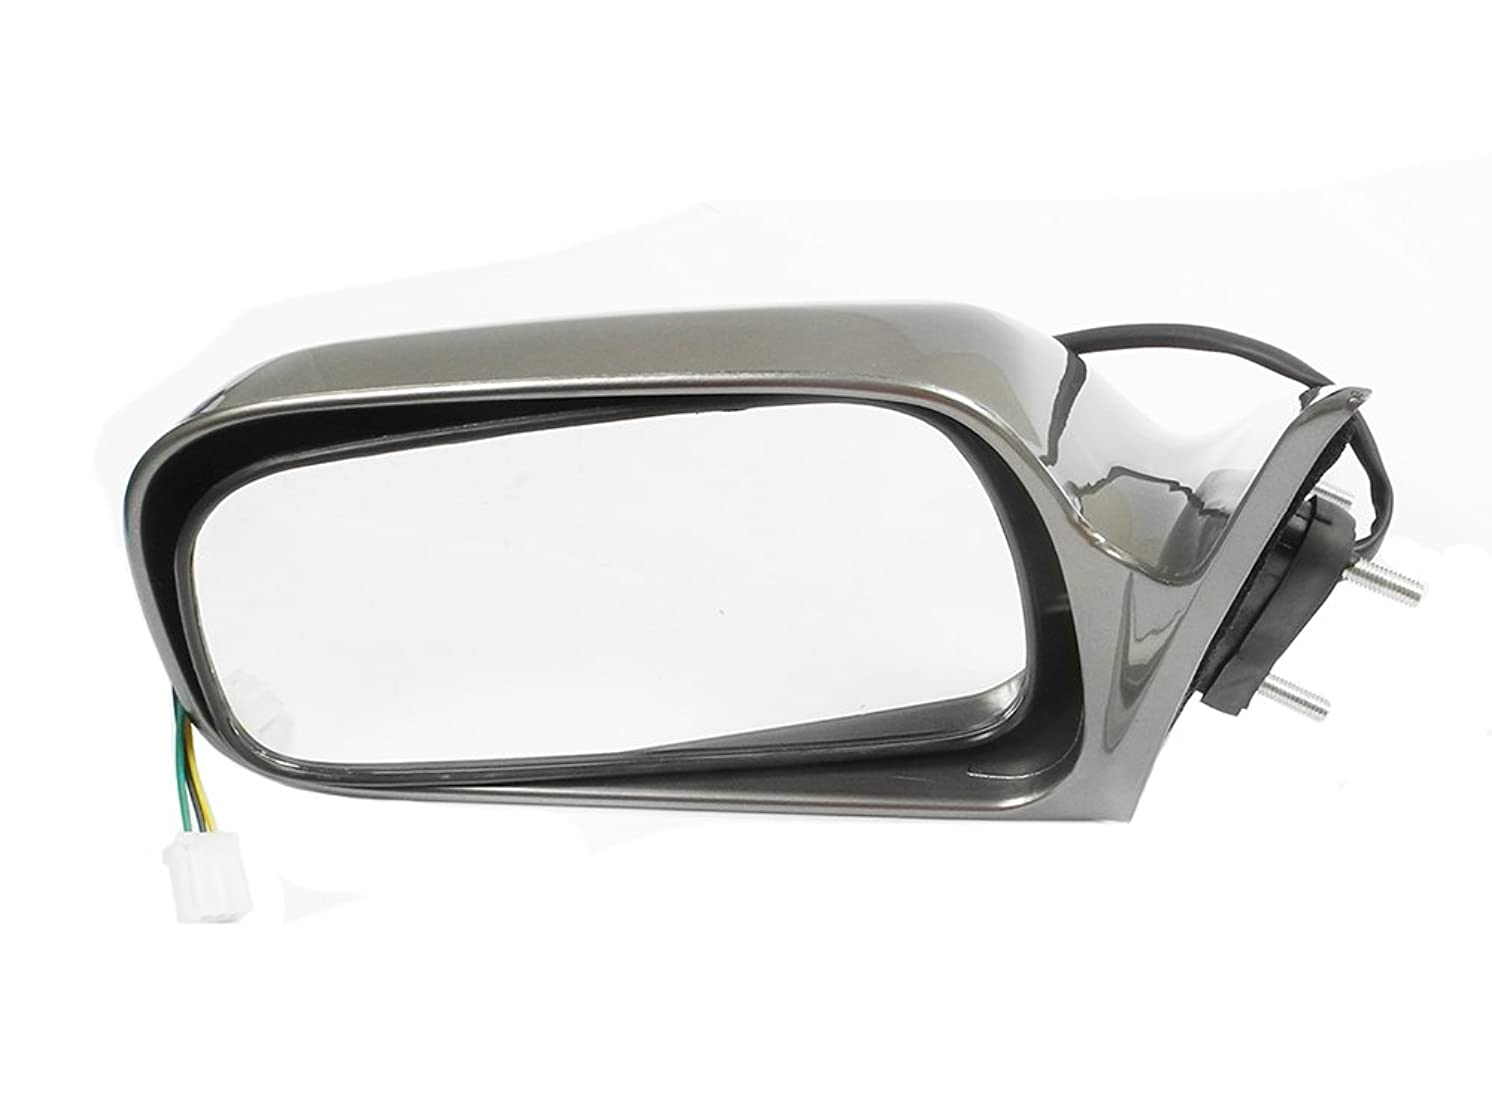 MotorKing 1 Pack TM1030-L-1B2 Driver Side Power Door Mirror (Fits for 97-01 Toyota Camry) uewjixvvbt5134